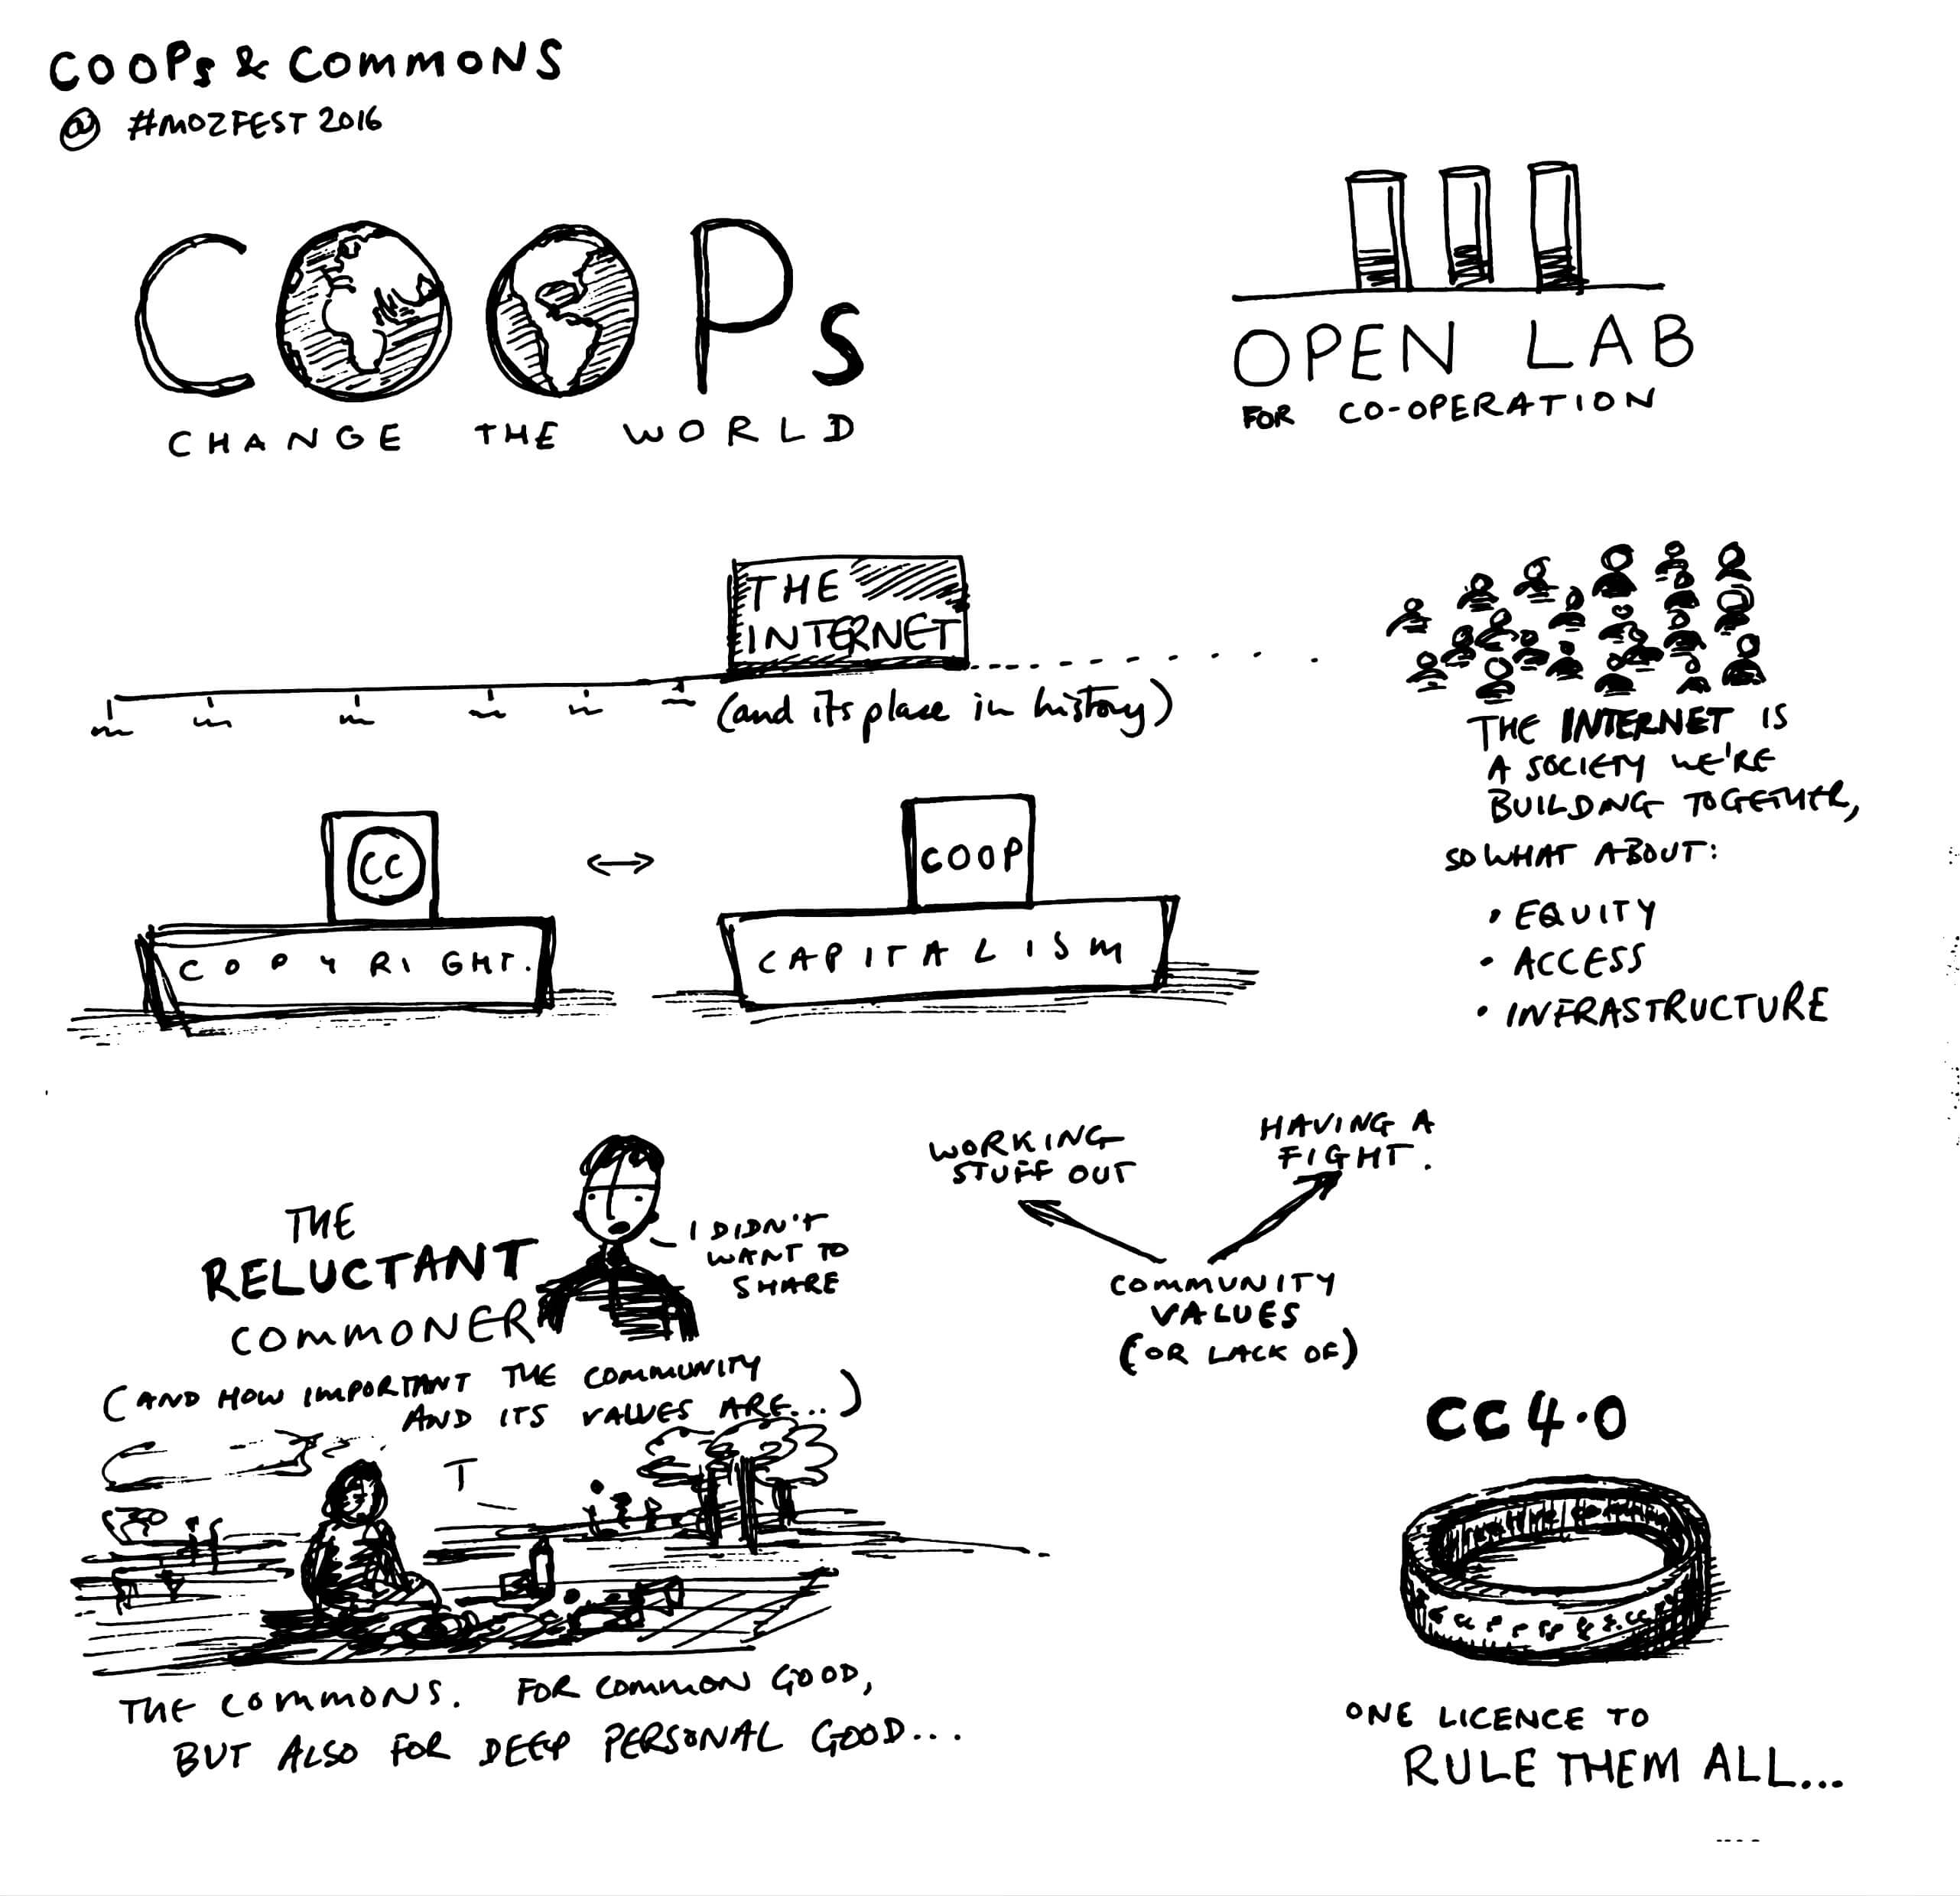 Co-ops & Commons